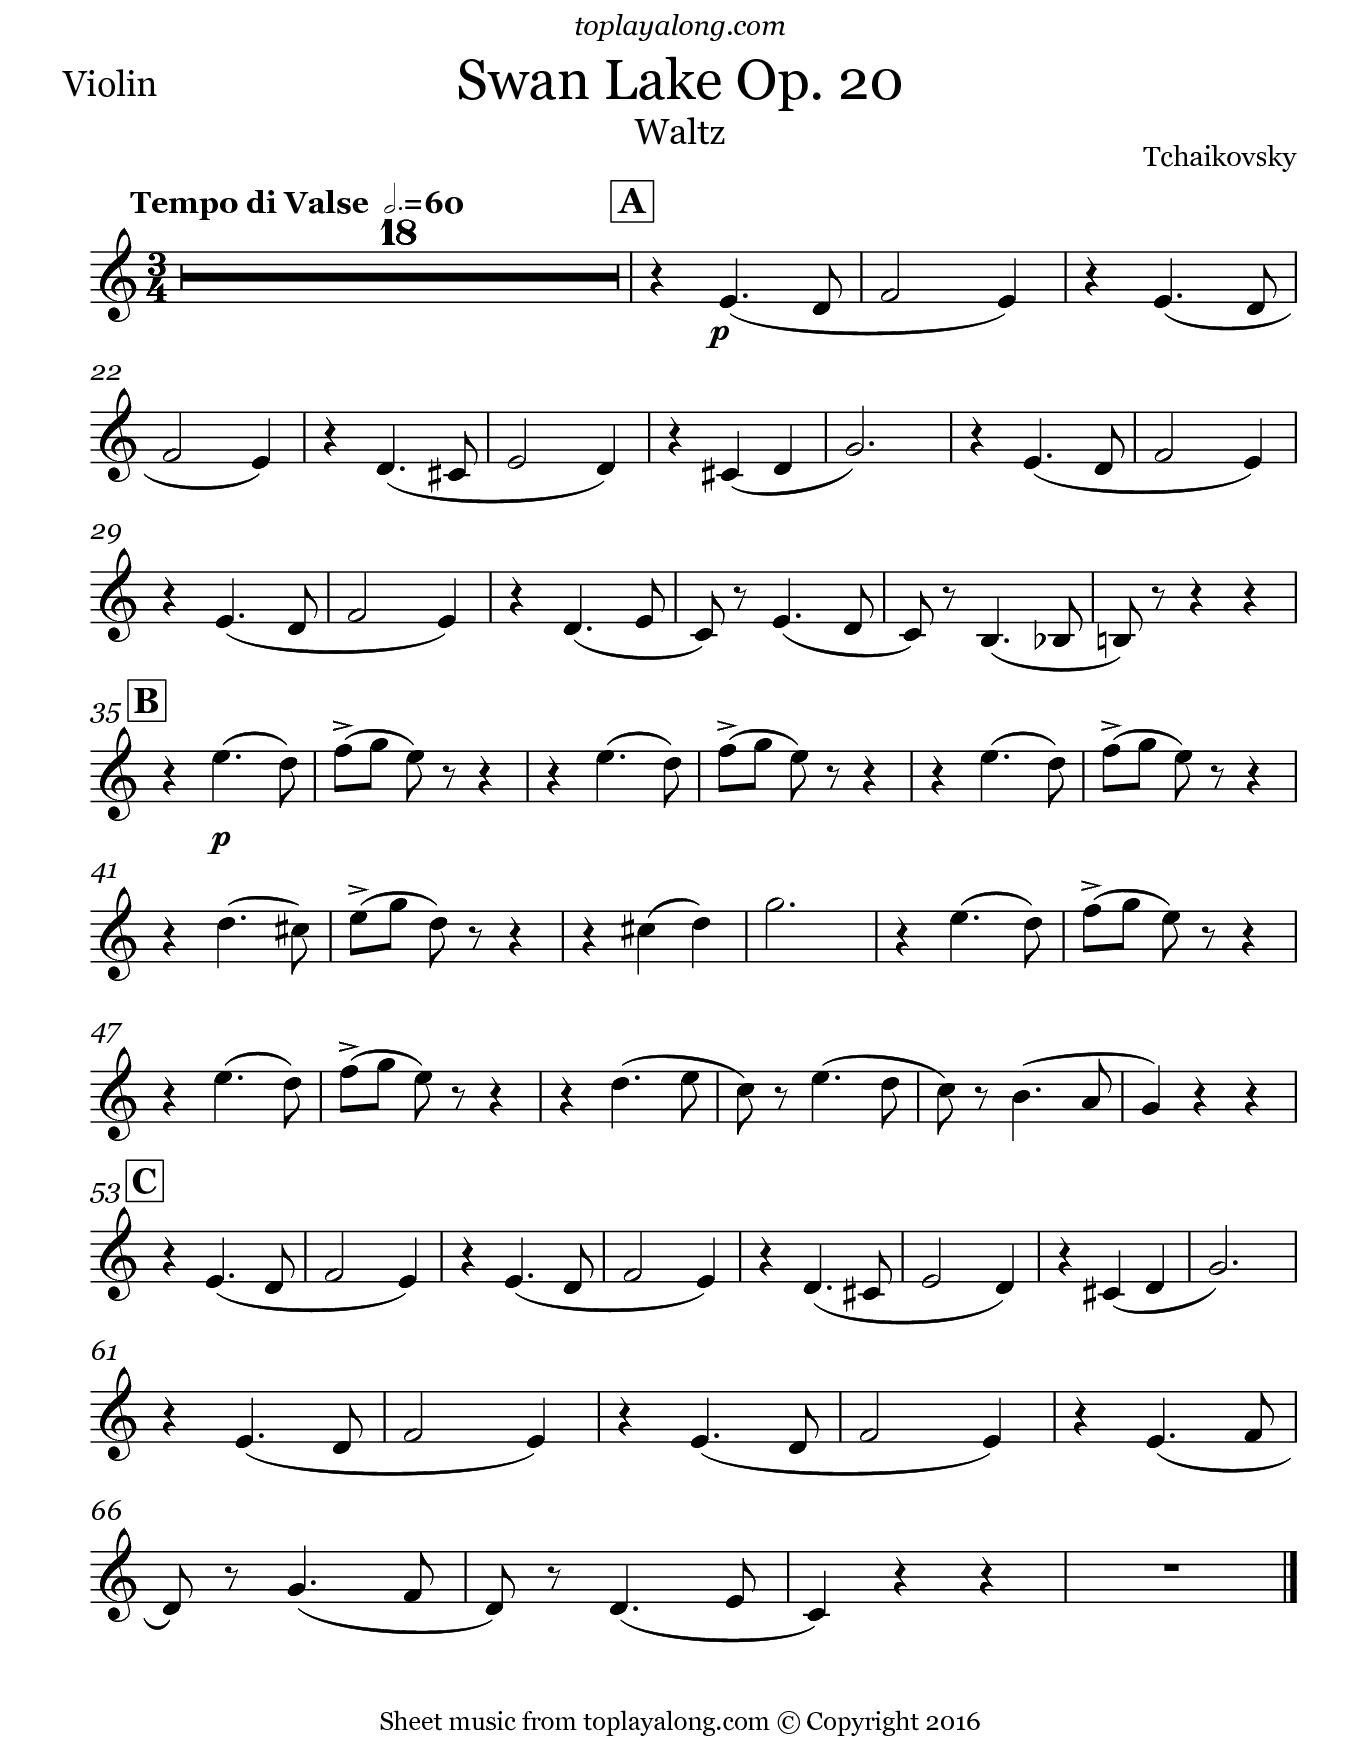 Swan Lake Op. 20 Waltz by Tchaikovsky. Sheet music for Violin, page 1.